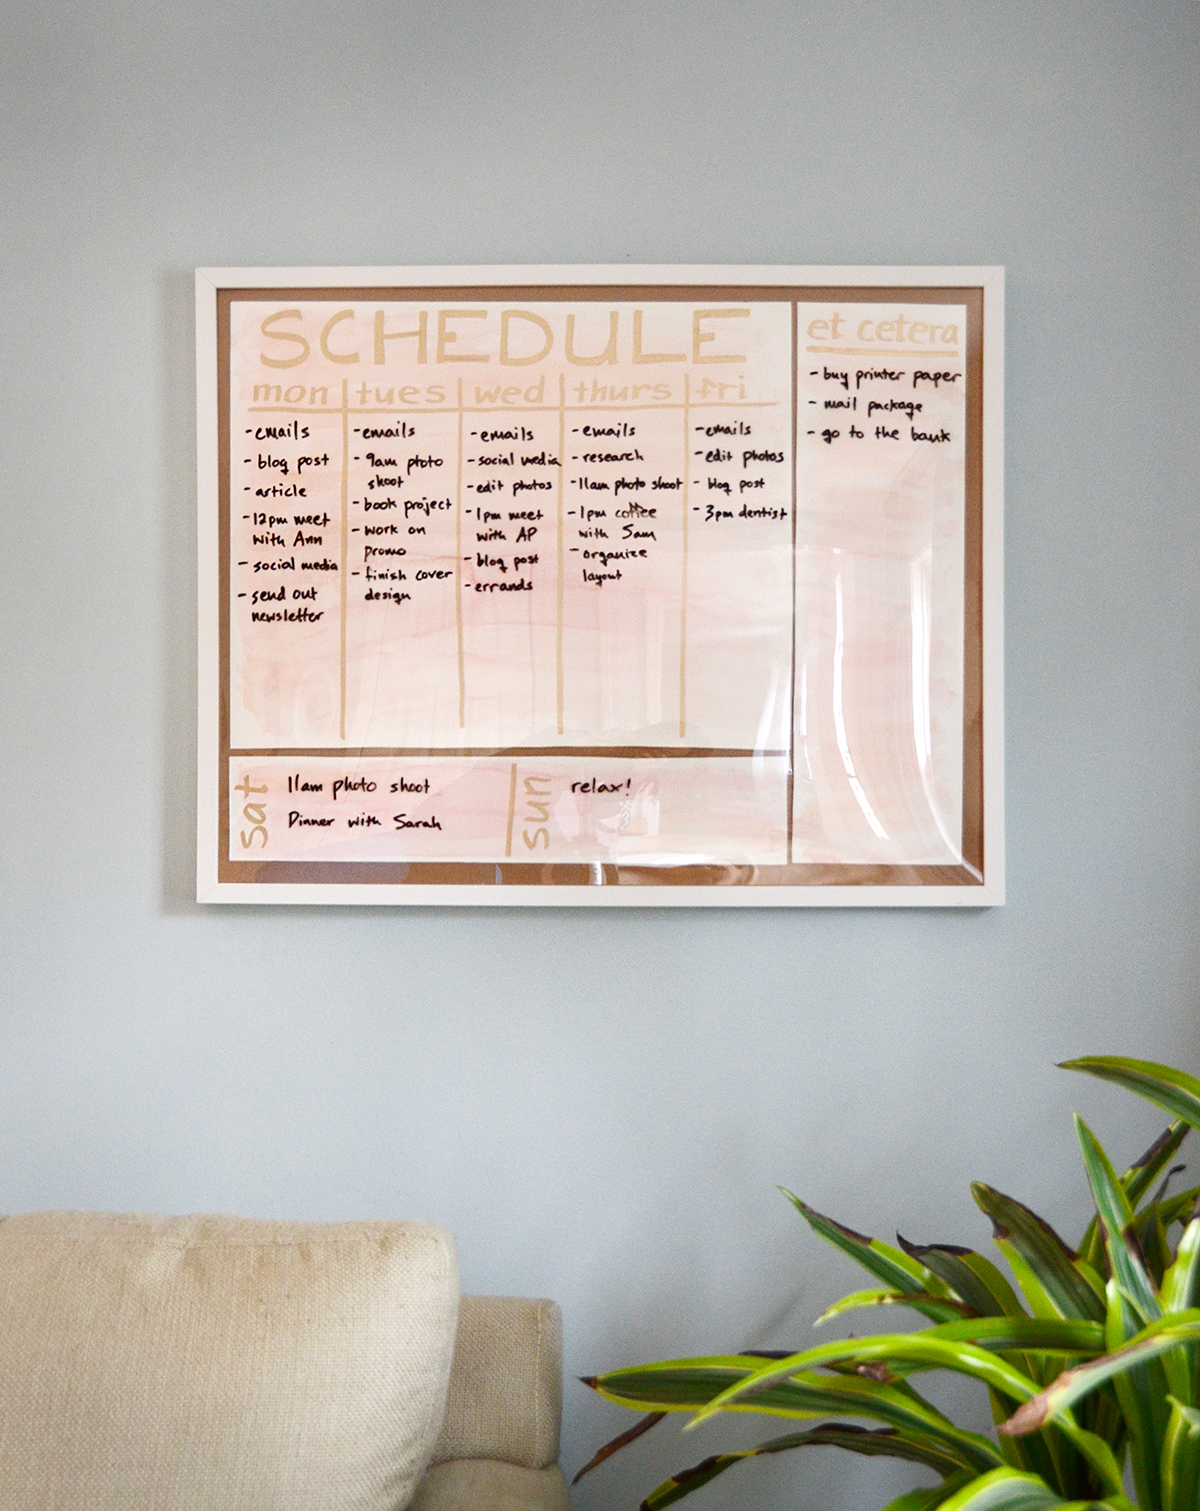 Watercolor Paper Wall Schedule Board – Photo Frame Project